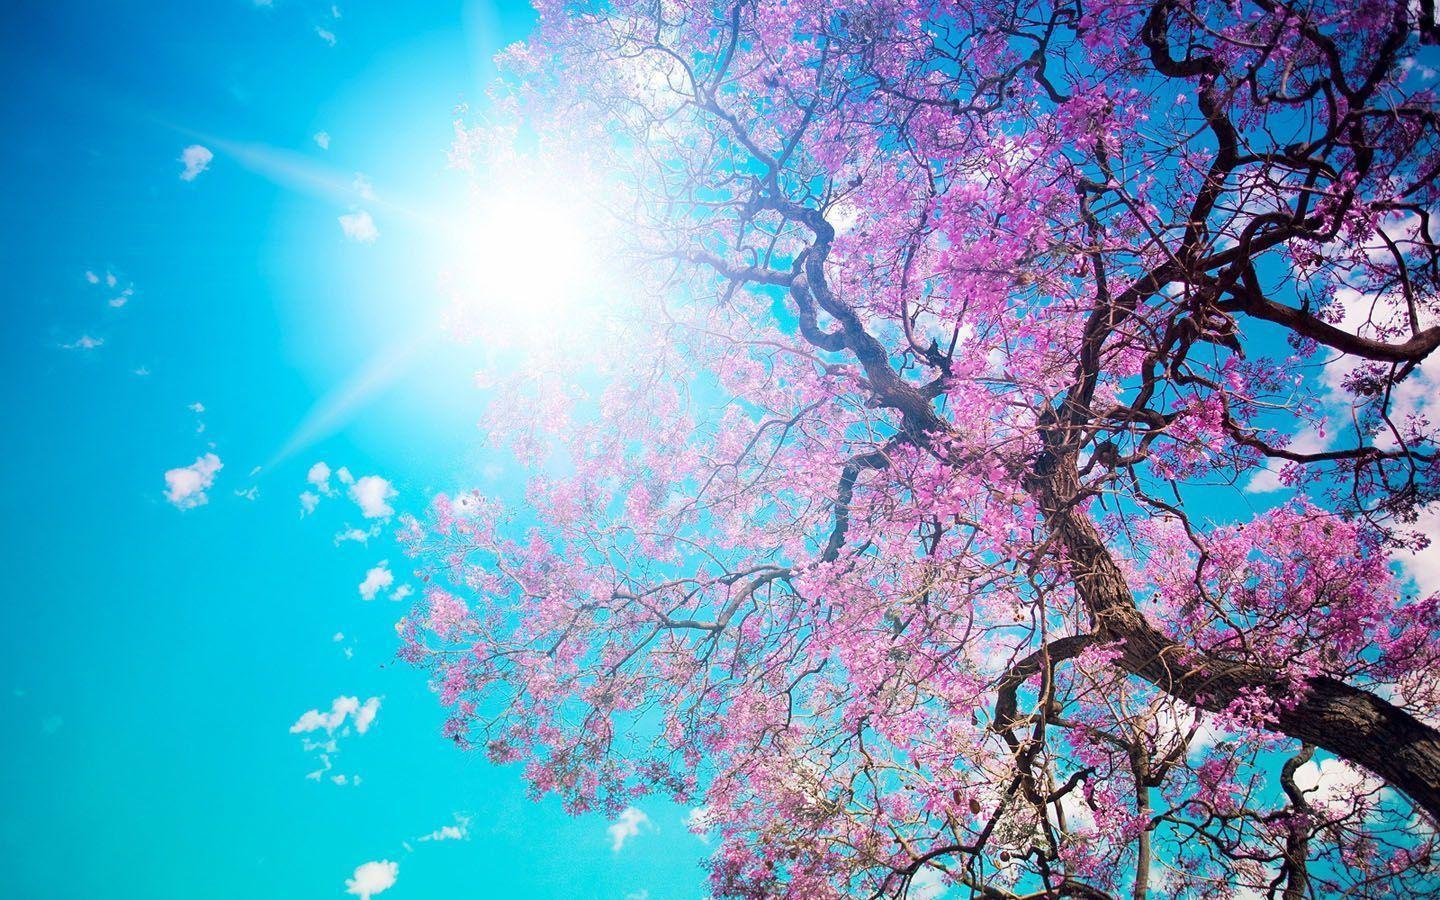 Cherry blossom desktop wallpapers wallpaper cave - Anime cherry blossom wallpaper ...